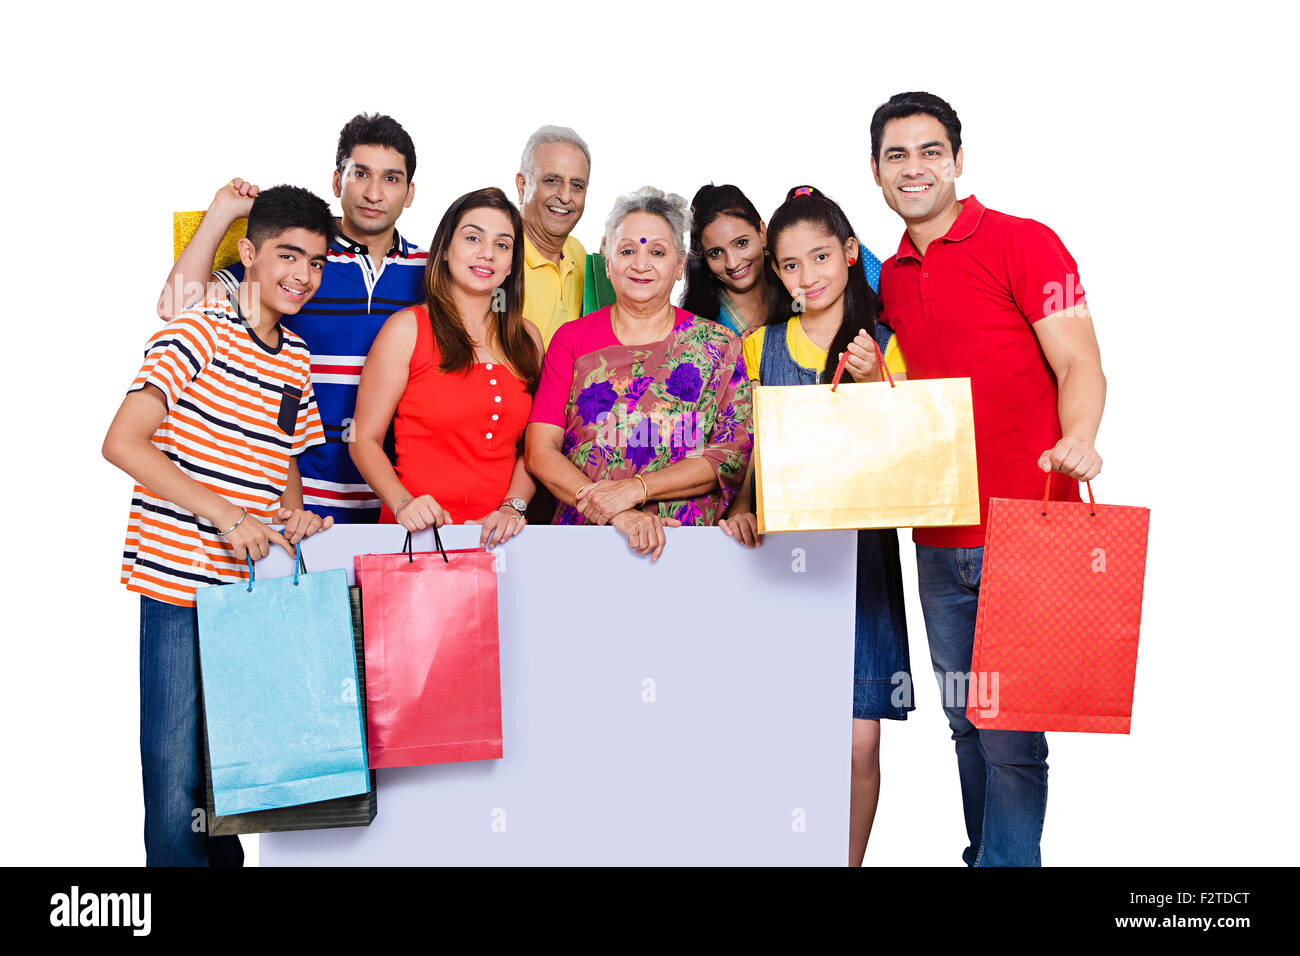 indian group Joint Family Message Board showing and shopping bag ...